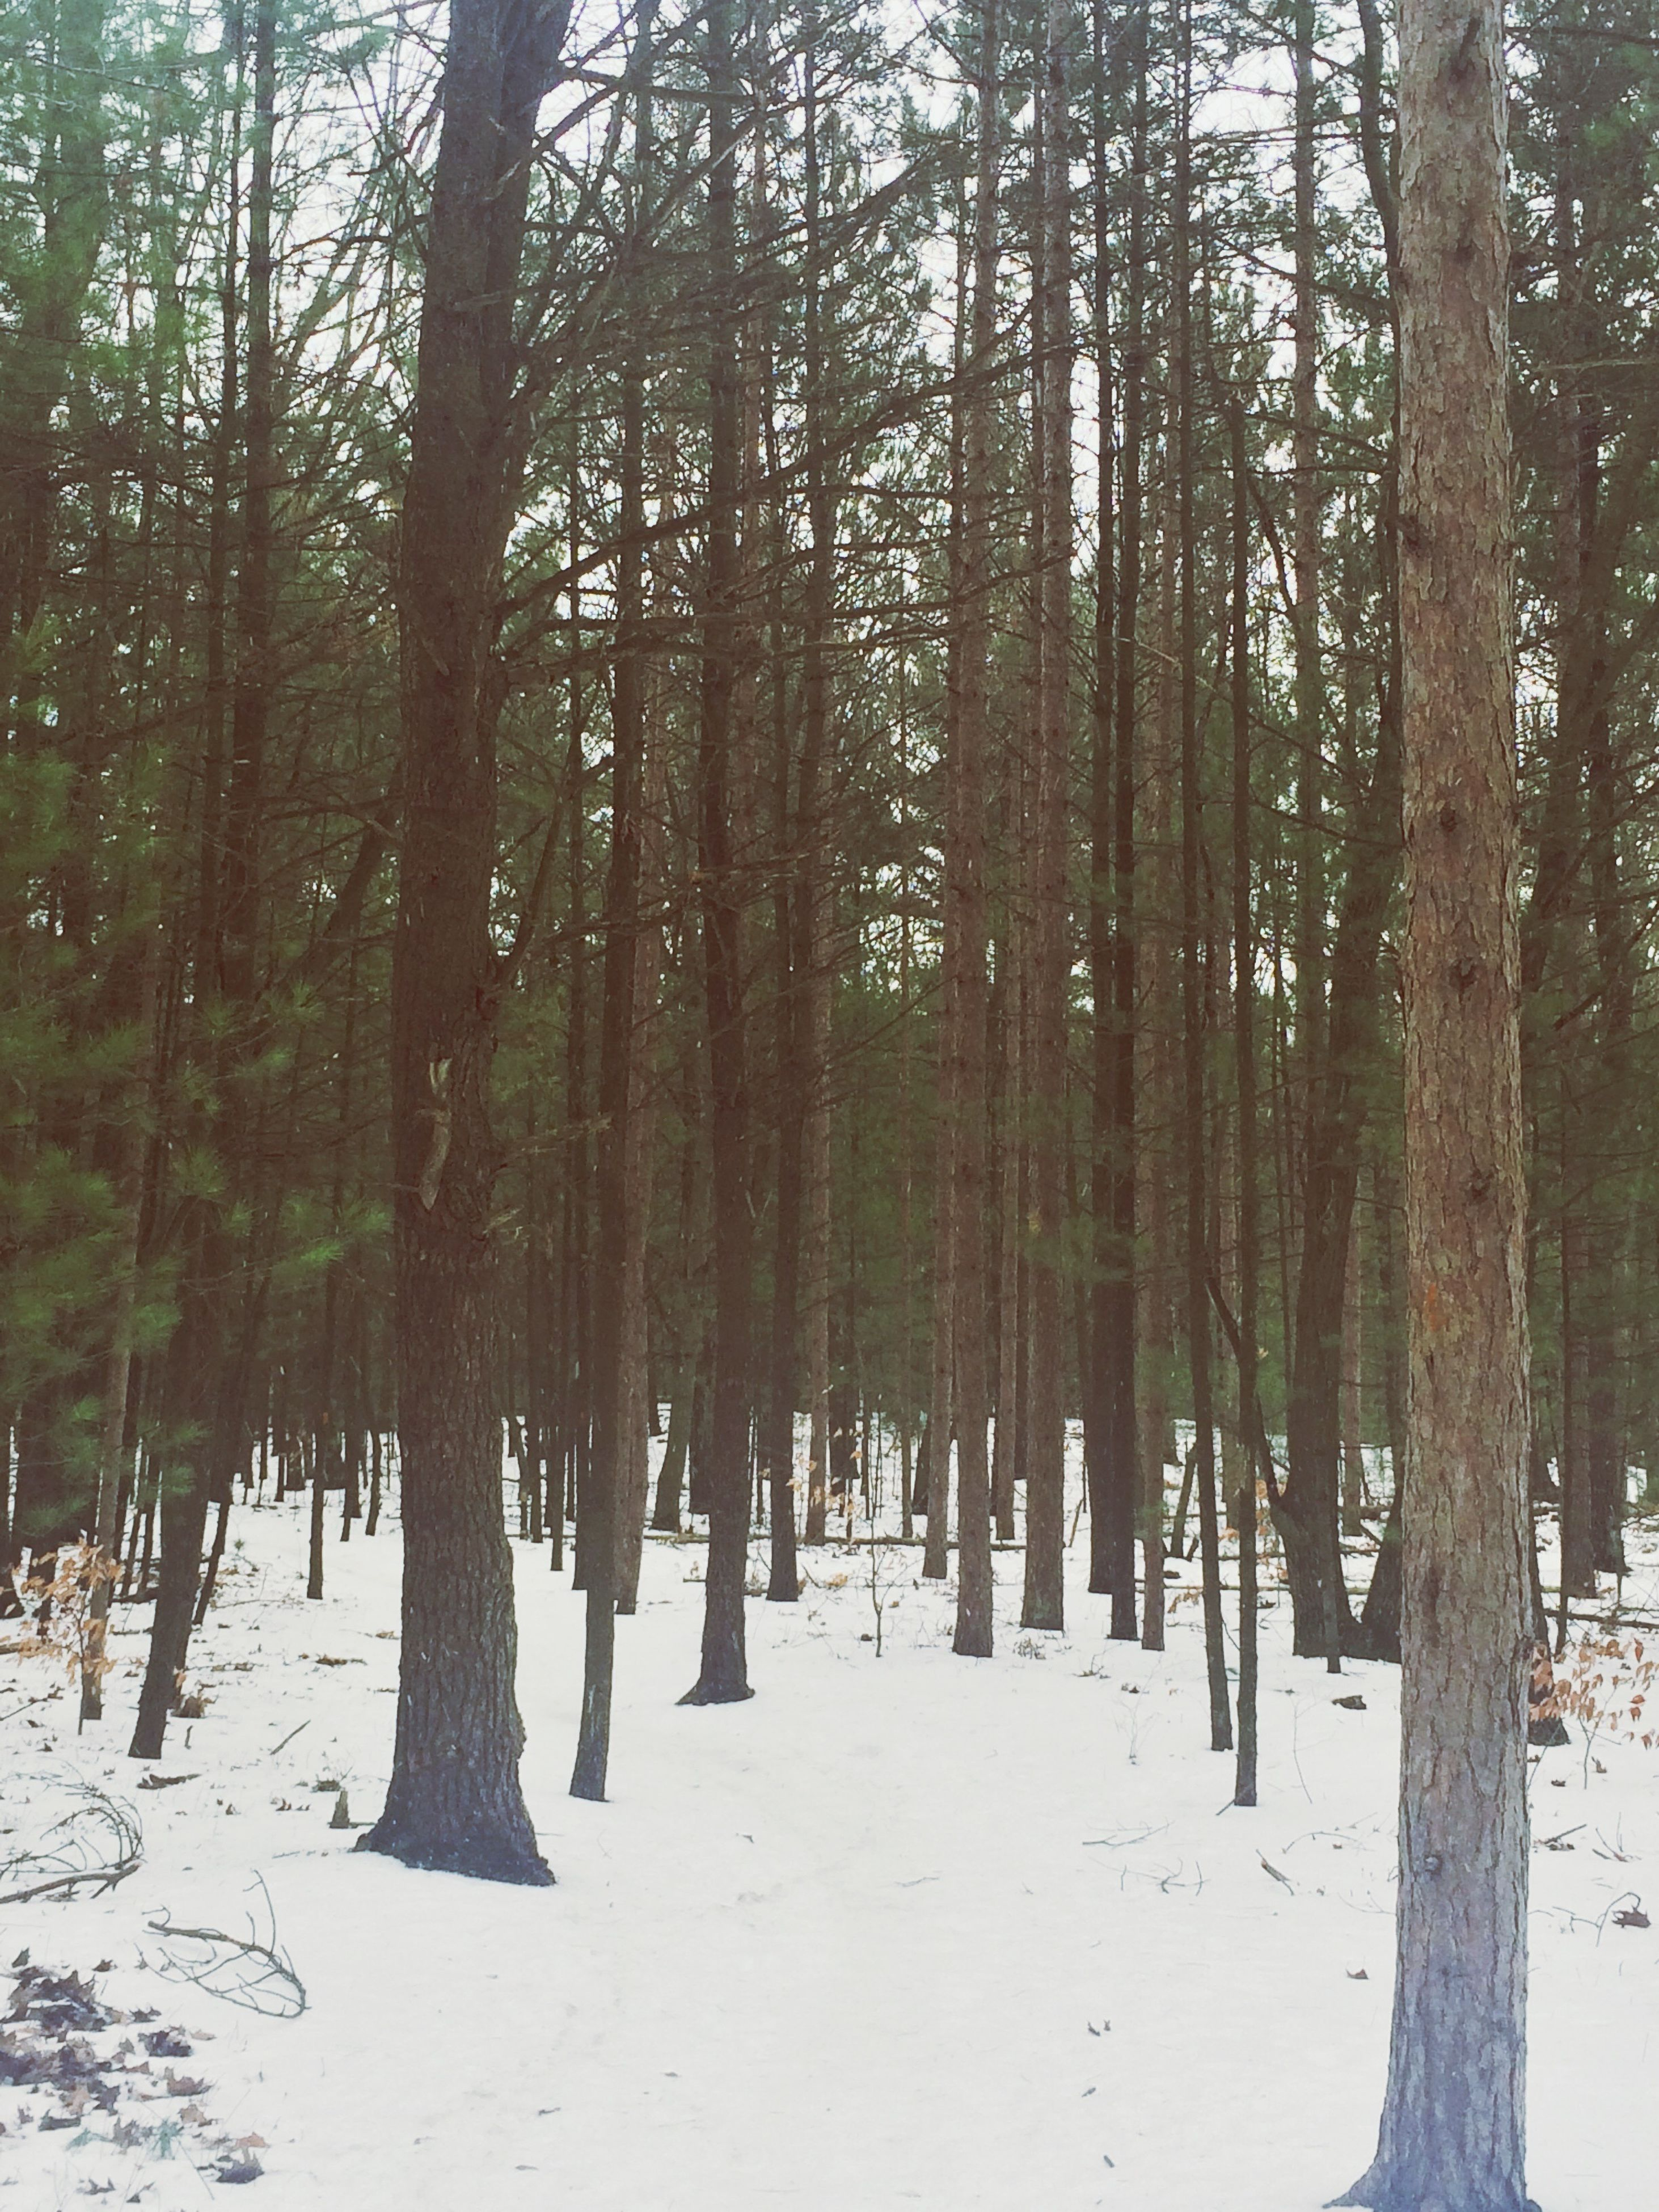 tree, tree trunk, forest, woodland, tranquility, tranquil scene, nature, winter, snow, cold temperature, beauty in nature, growth, scenics, landscape, non-urban scene, season, day, outdoors, abundance, weather